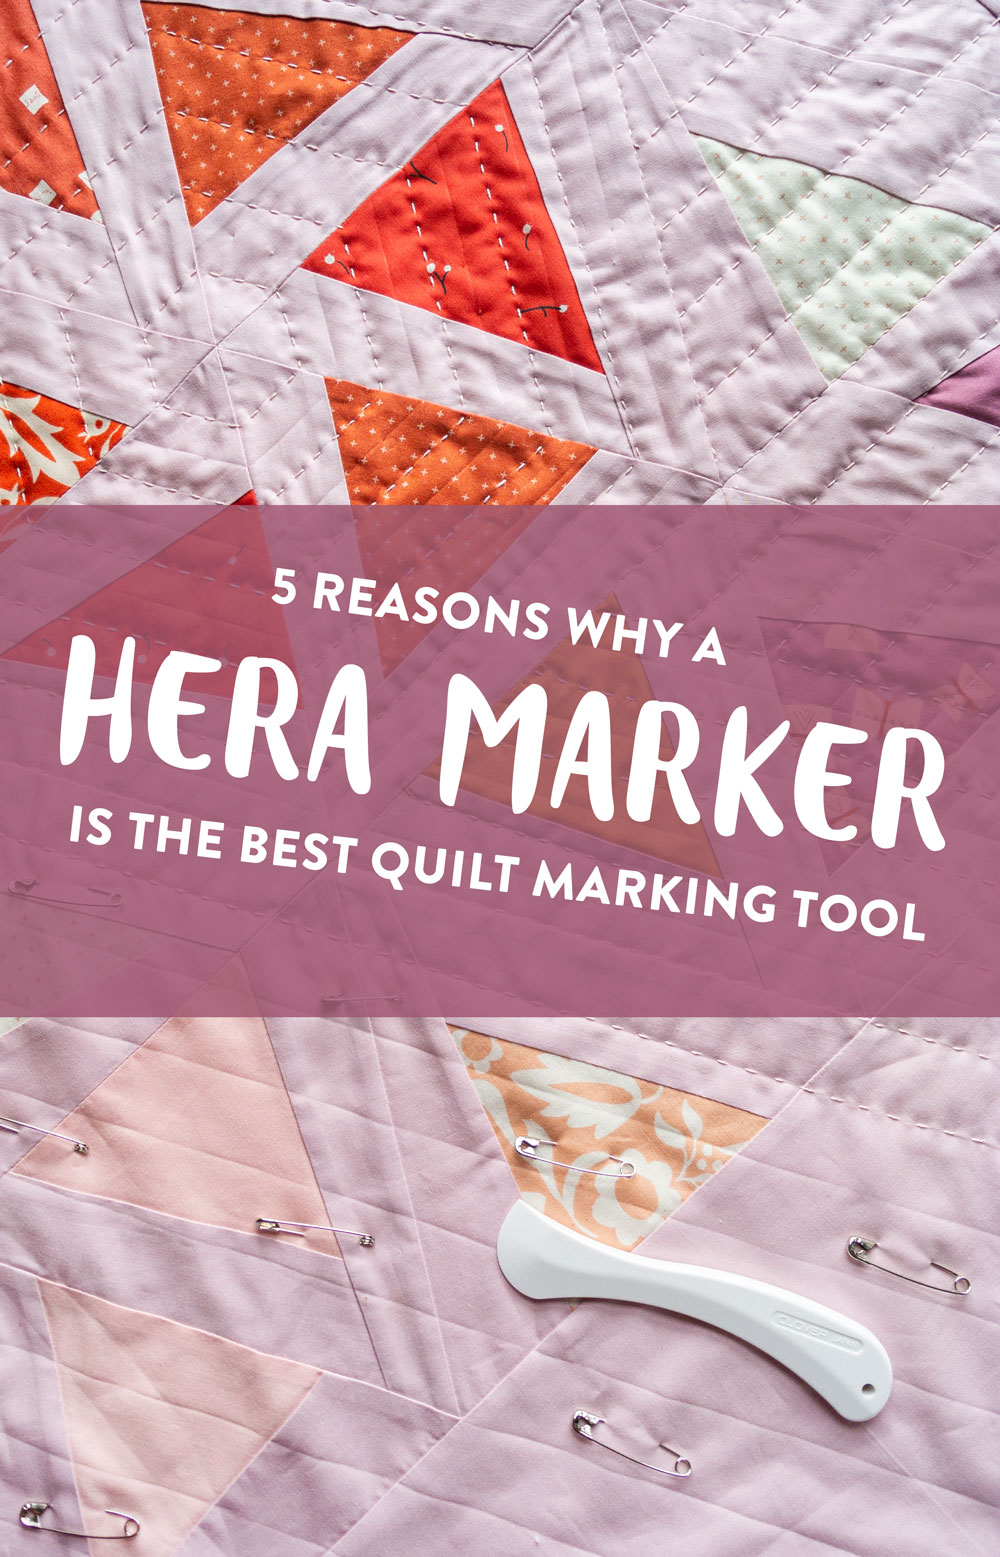 A hera marker is ideal for marking guide lines on your quilt because it only makes creases and not actual marks. Watch a video tutorial on how to use it! SuzyQuilts.com #quiltingtips #quiltingtools